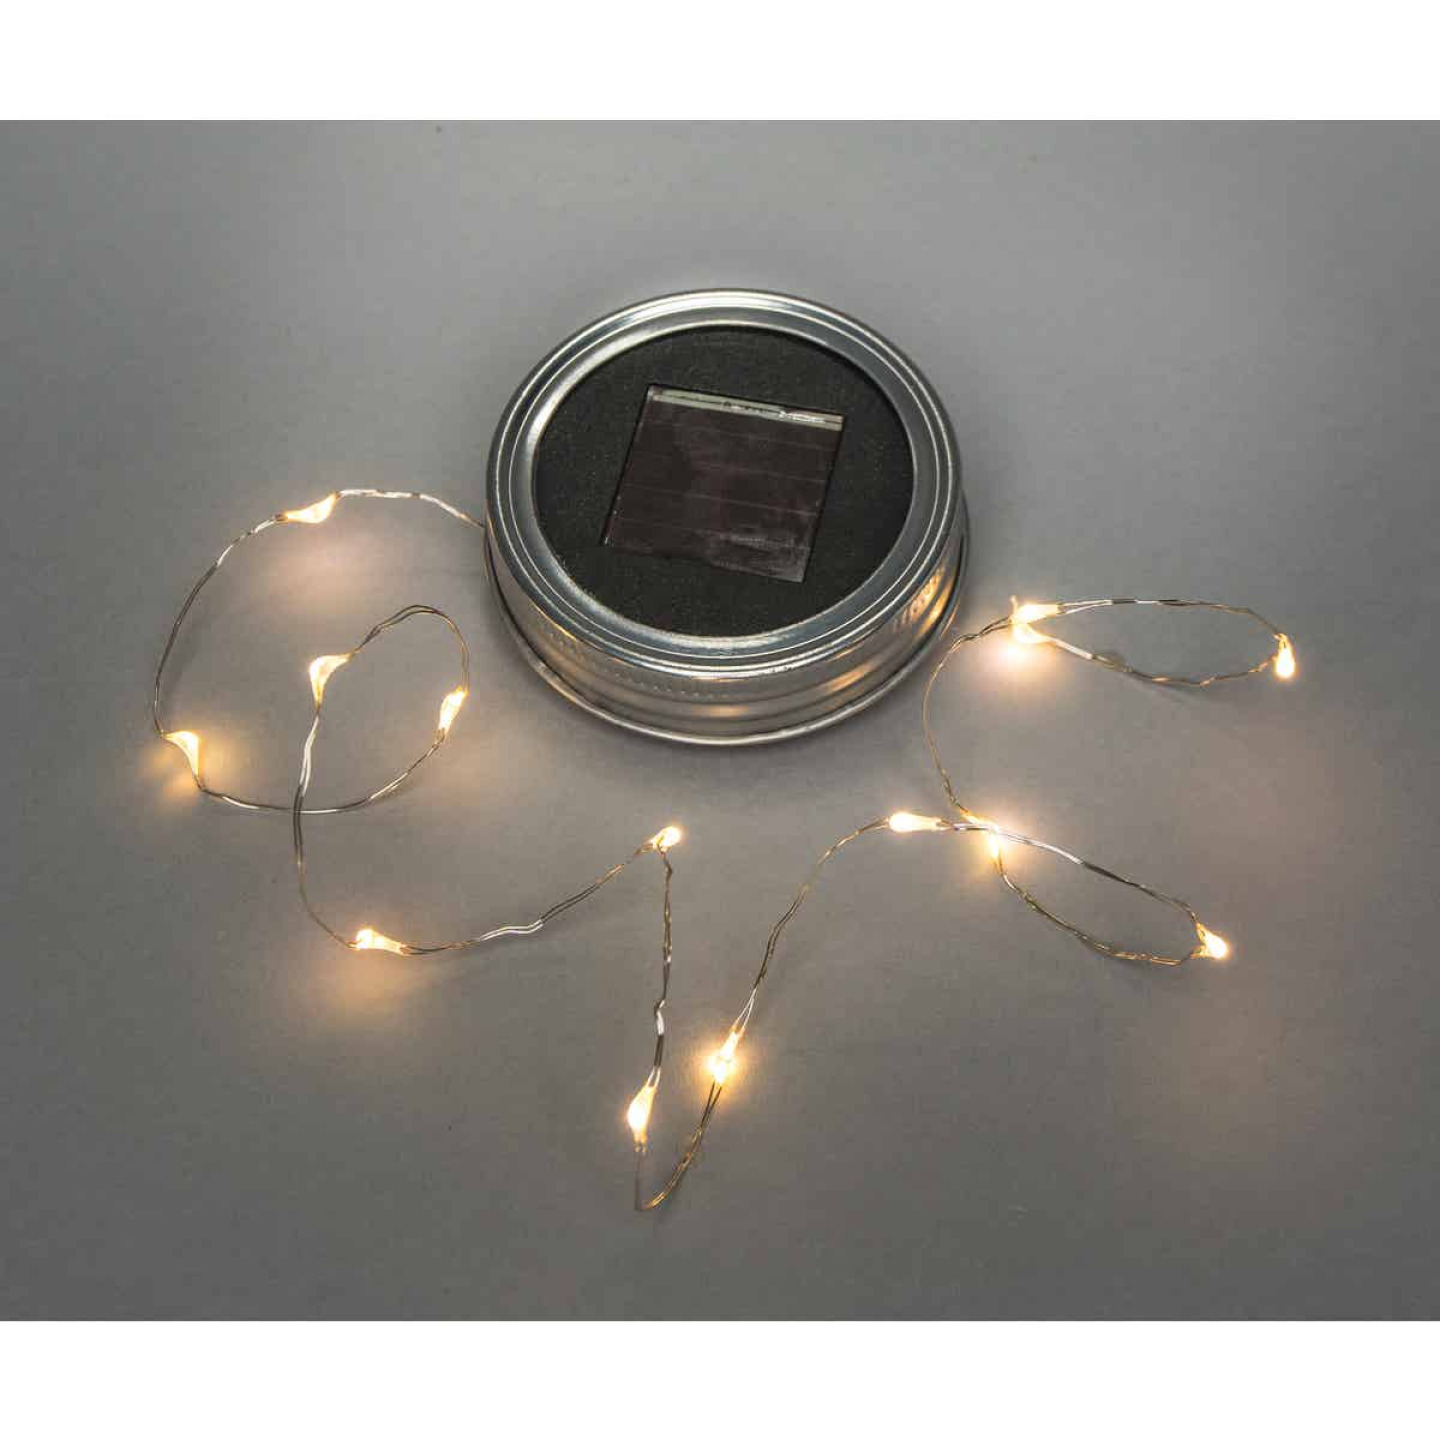 Everlasting Glow Warm White Bulb Metal Solar Mason Jar Lid with String Lights Image 1